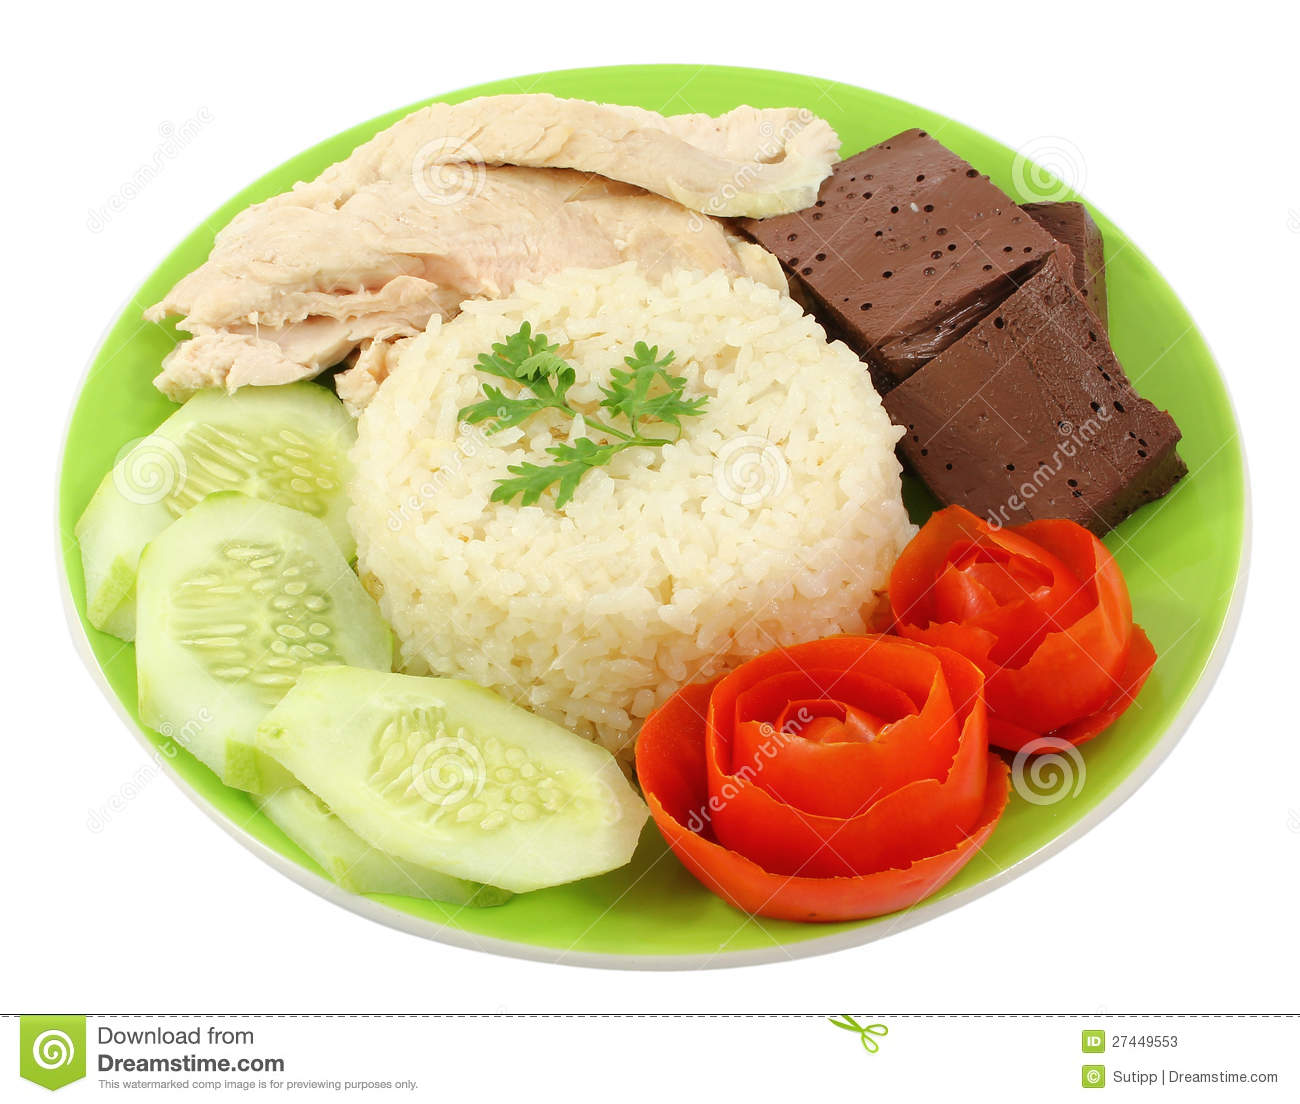 Steam Chicken Over Rice Stock Photos - Image: 27449553